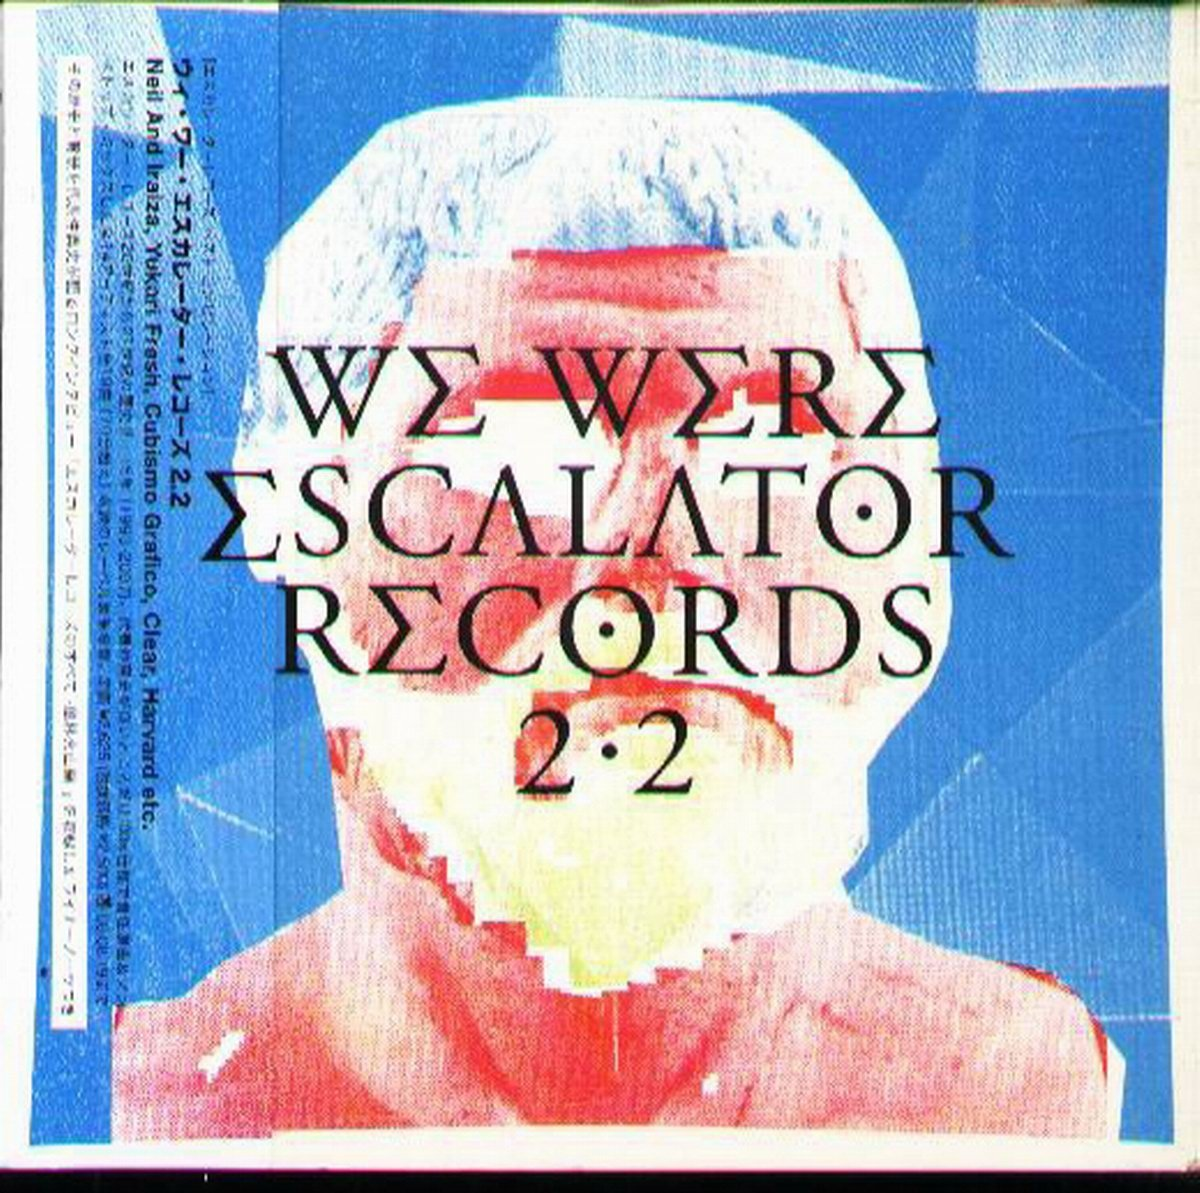 K - WE WERE ESCALATOR RECORDS 2.2 - 日版 CD Cubismo Grafico